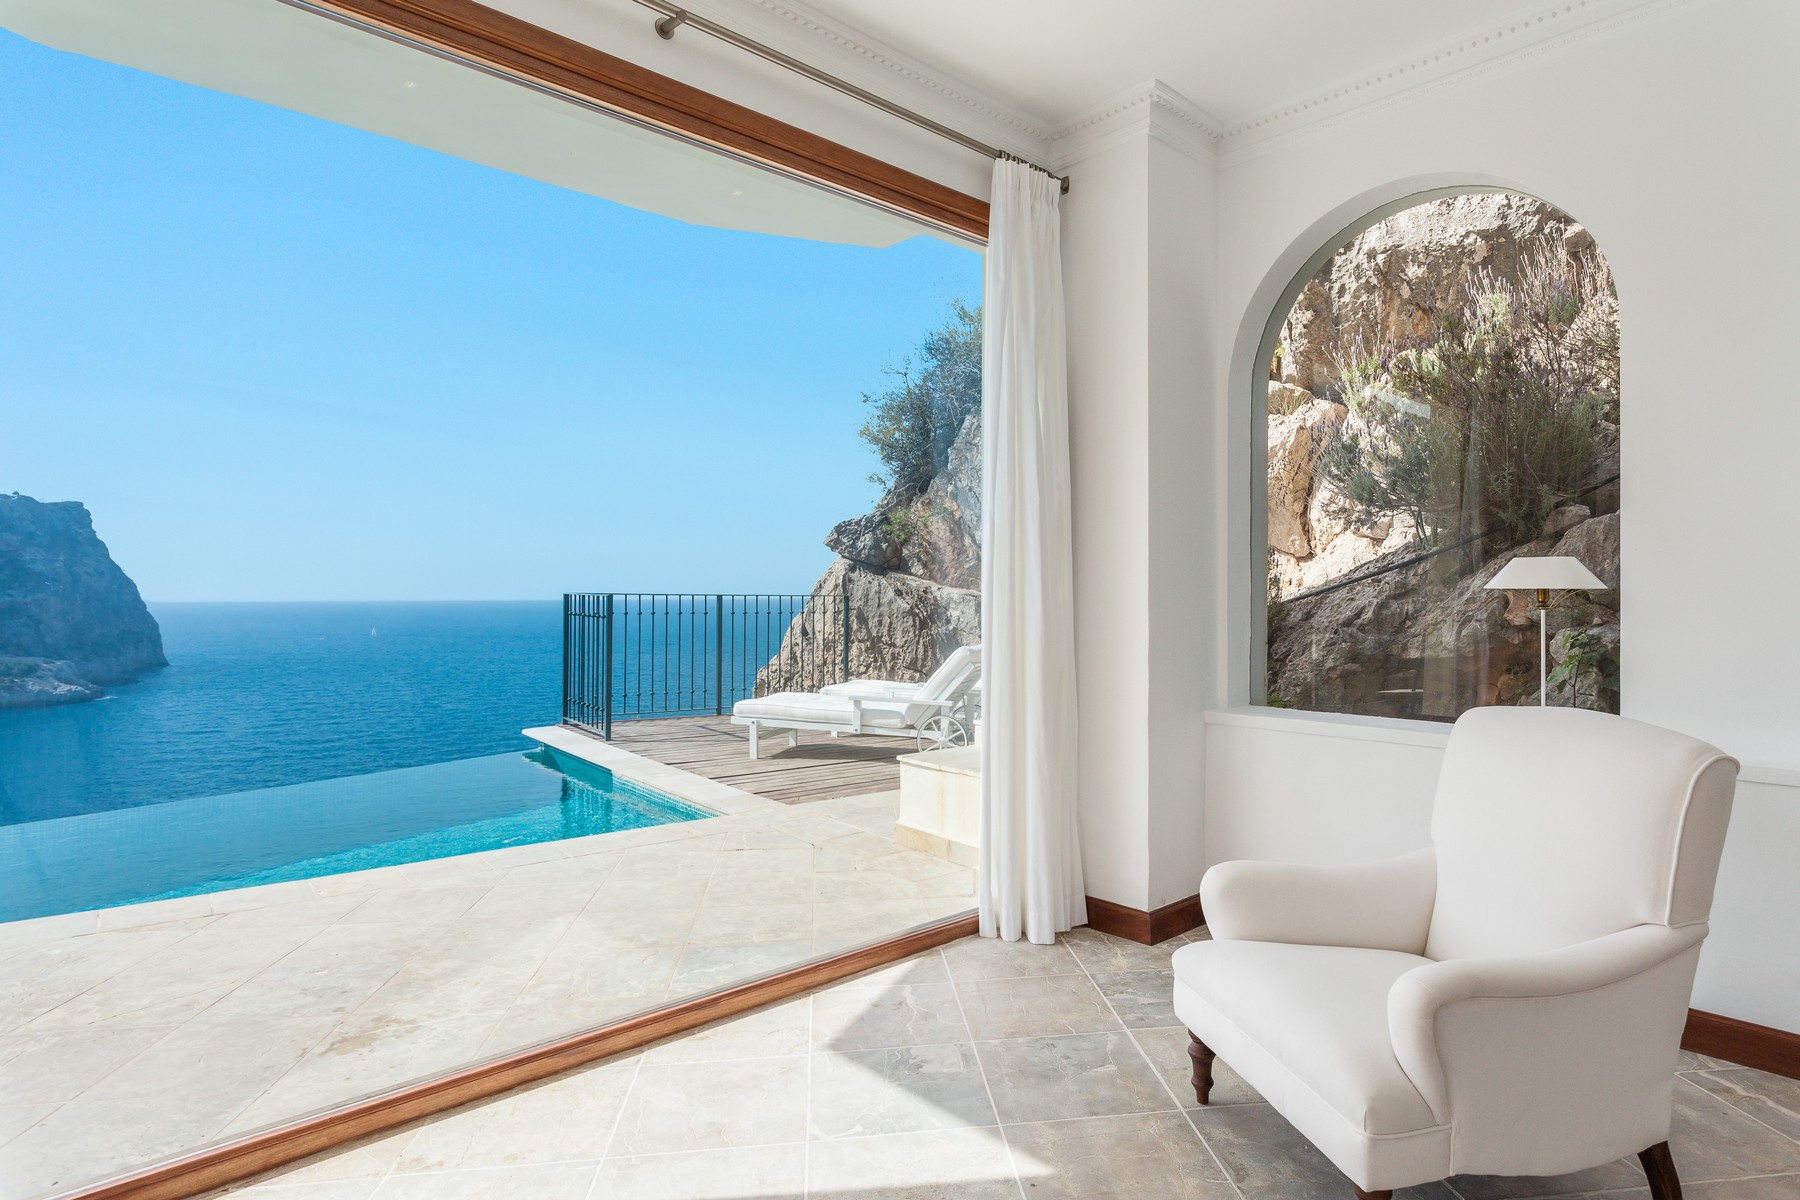 Single Family Home for Sale at Villa with amazing sea views in Port Andratx Port Andratx, Mallorca 07157 Spain